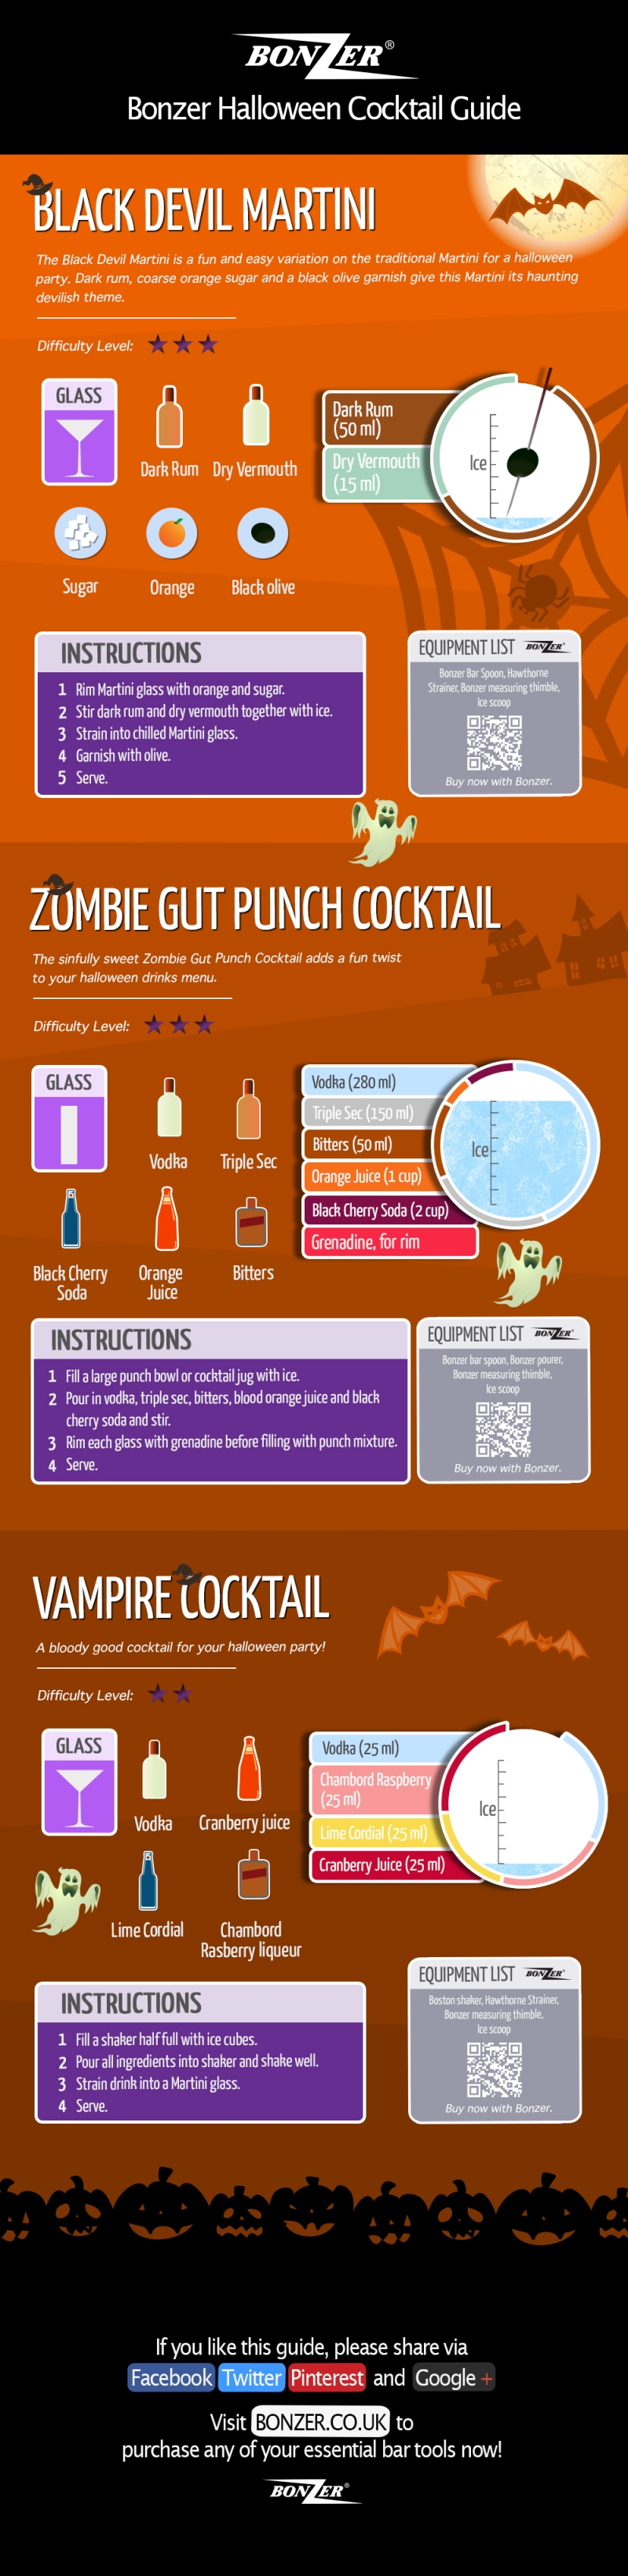 bonzer-halloween-cocktail-guide